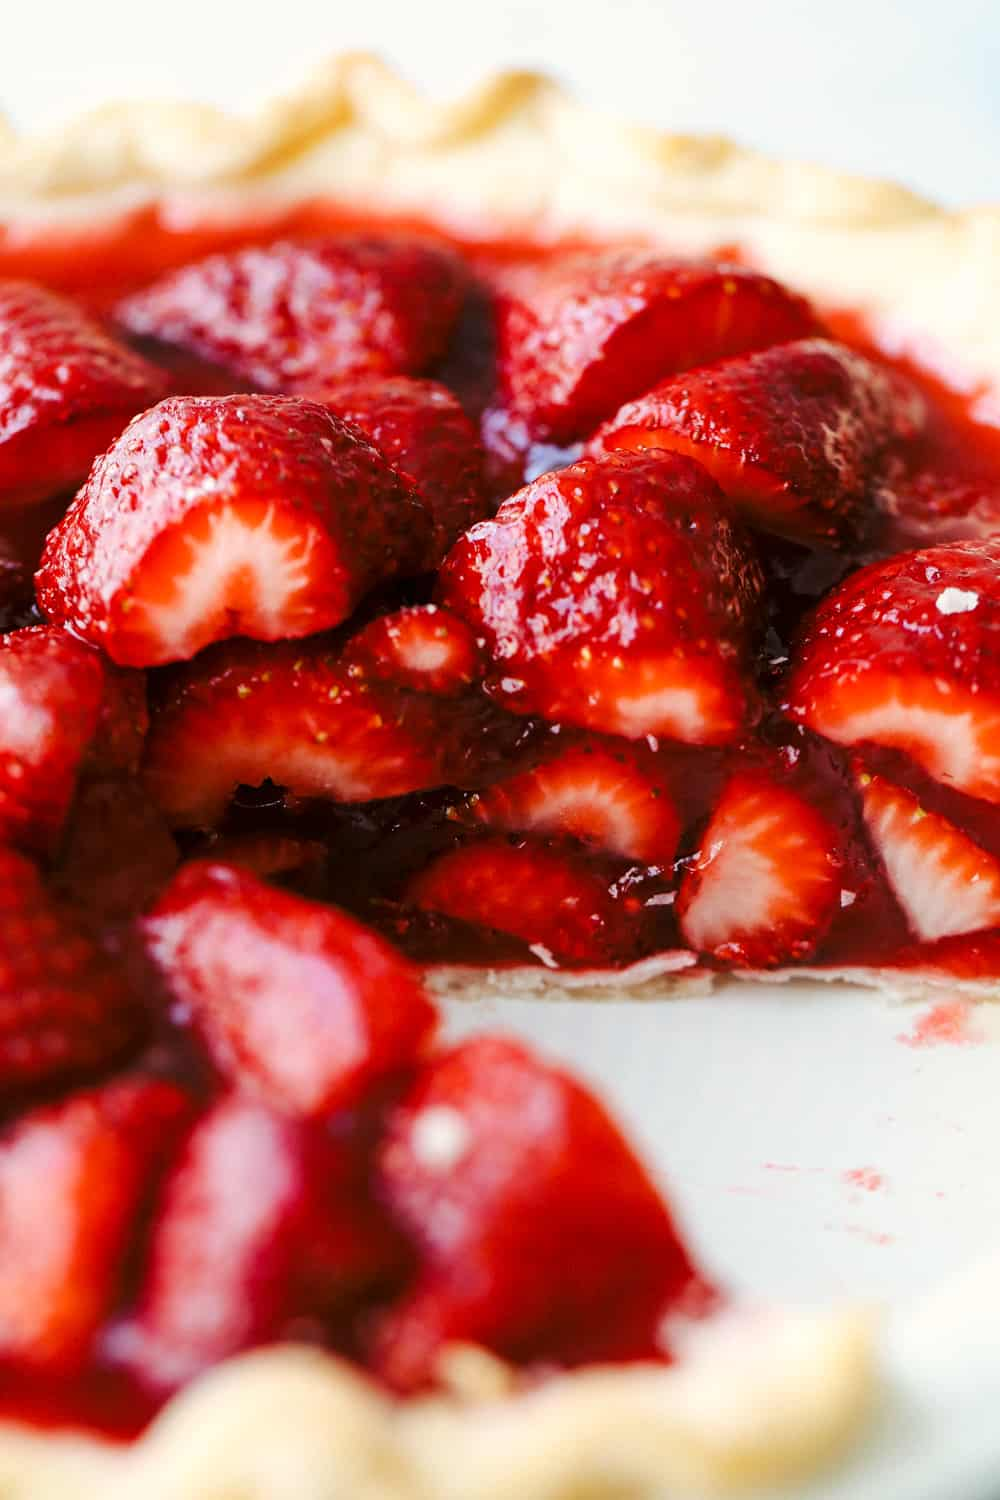 Close up on a slice of strawberry pie.